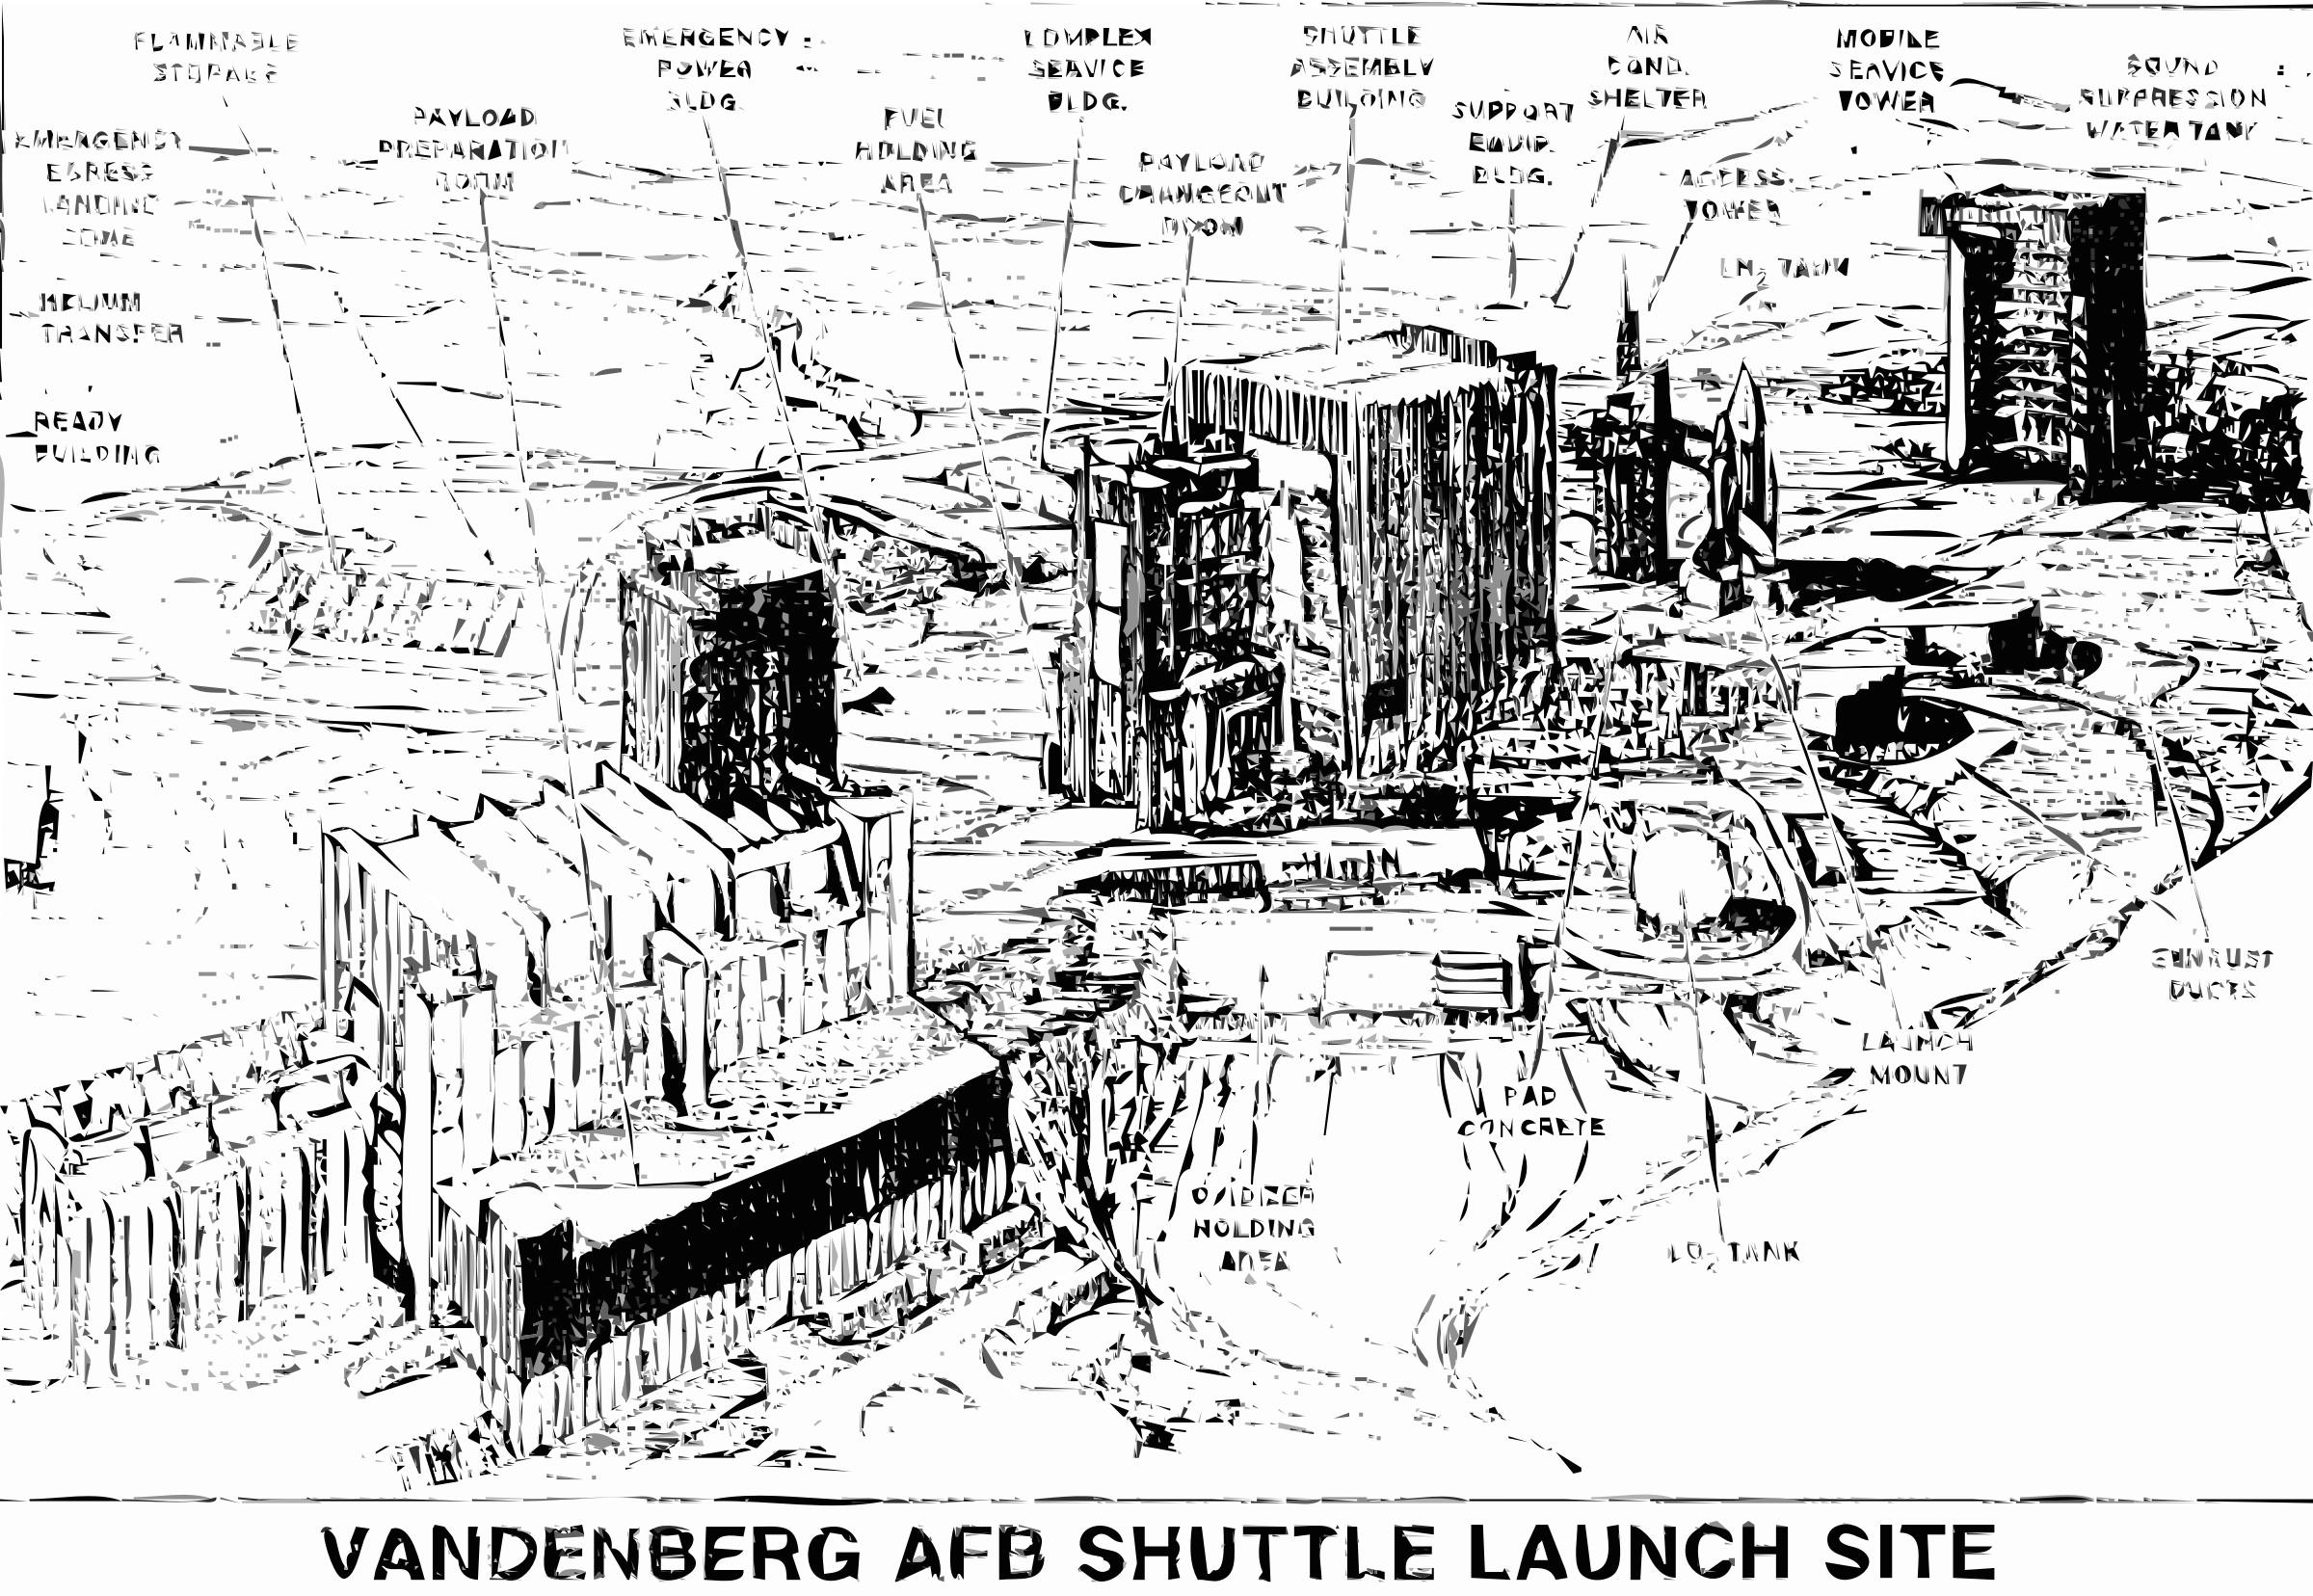 Vandenberg shuttle launch drawing. Clipart rocket launching pad